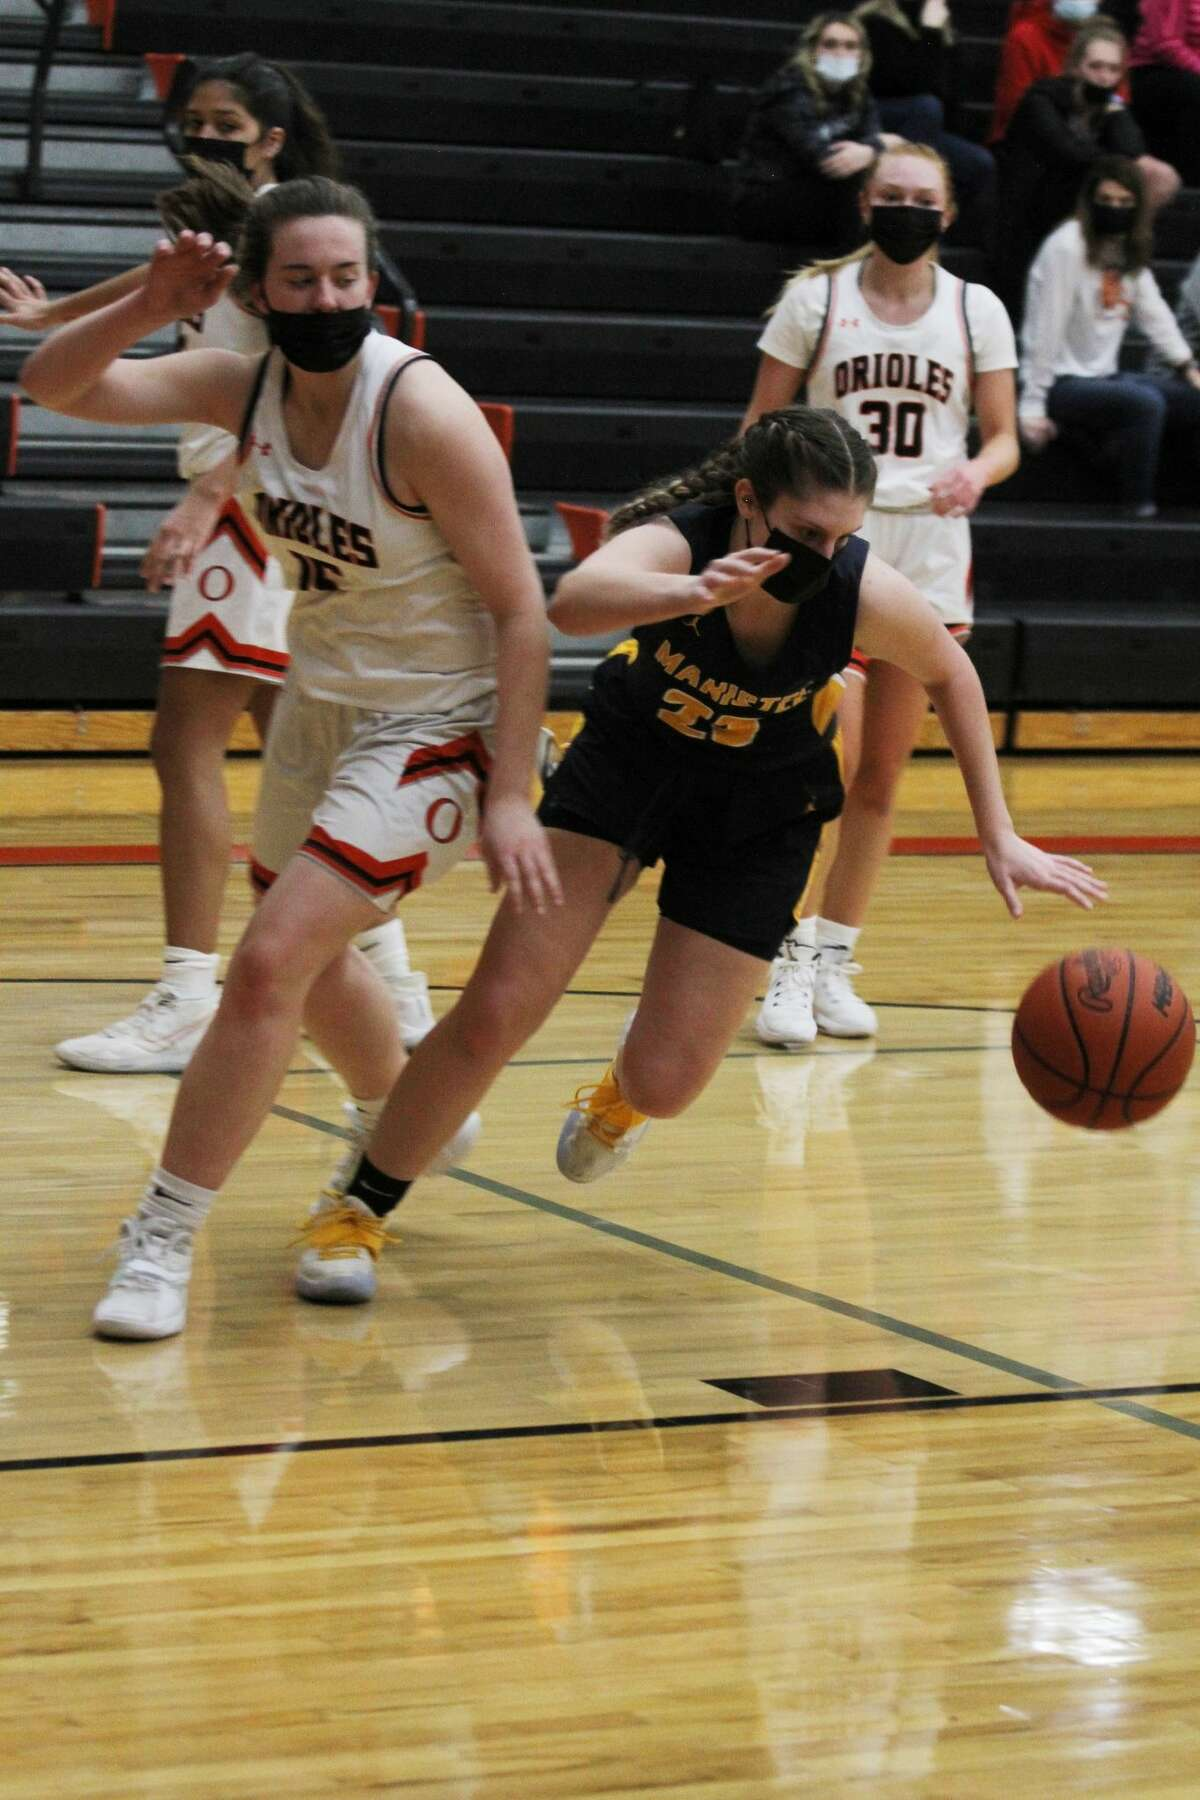 The Manistee girls basketball team fell to rival Ludington, 50-25, on Wednesday, March 24, 2021, in a Division 2 district semifinal in Kingsley.